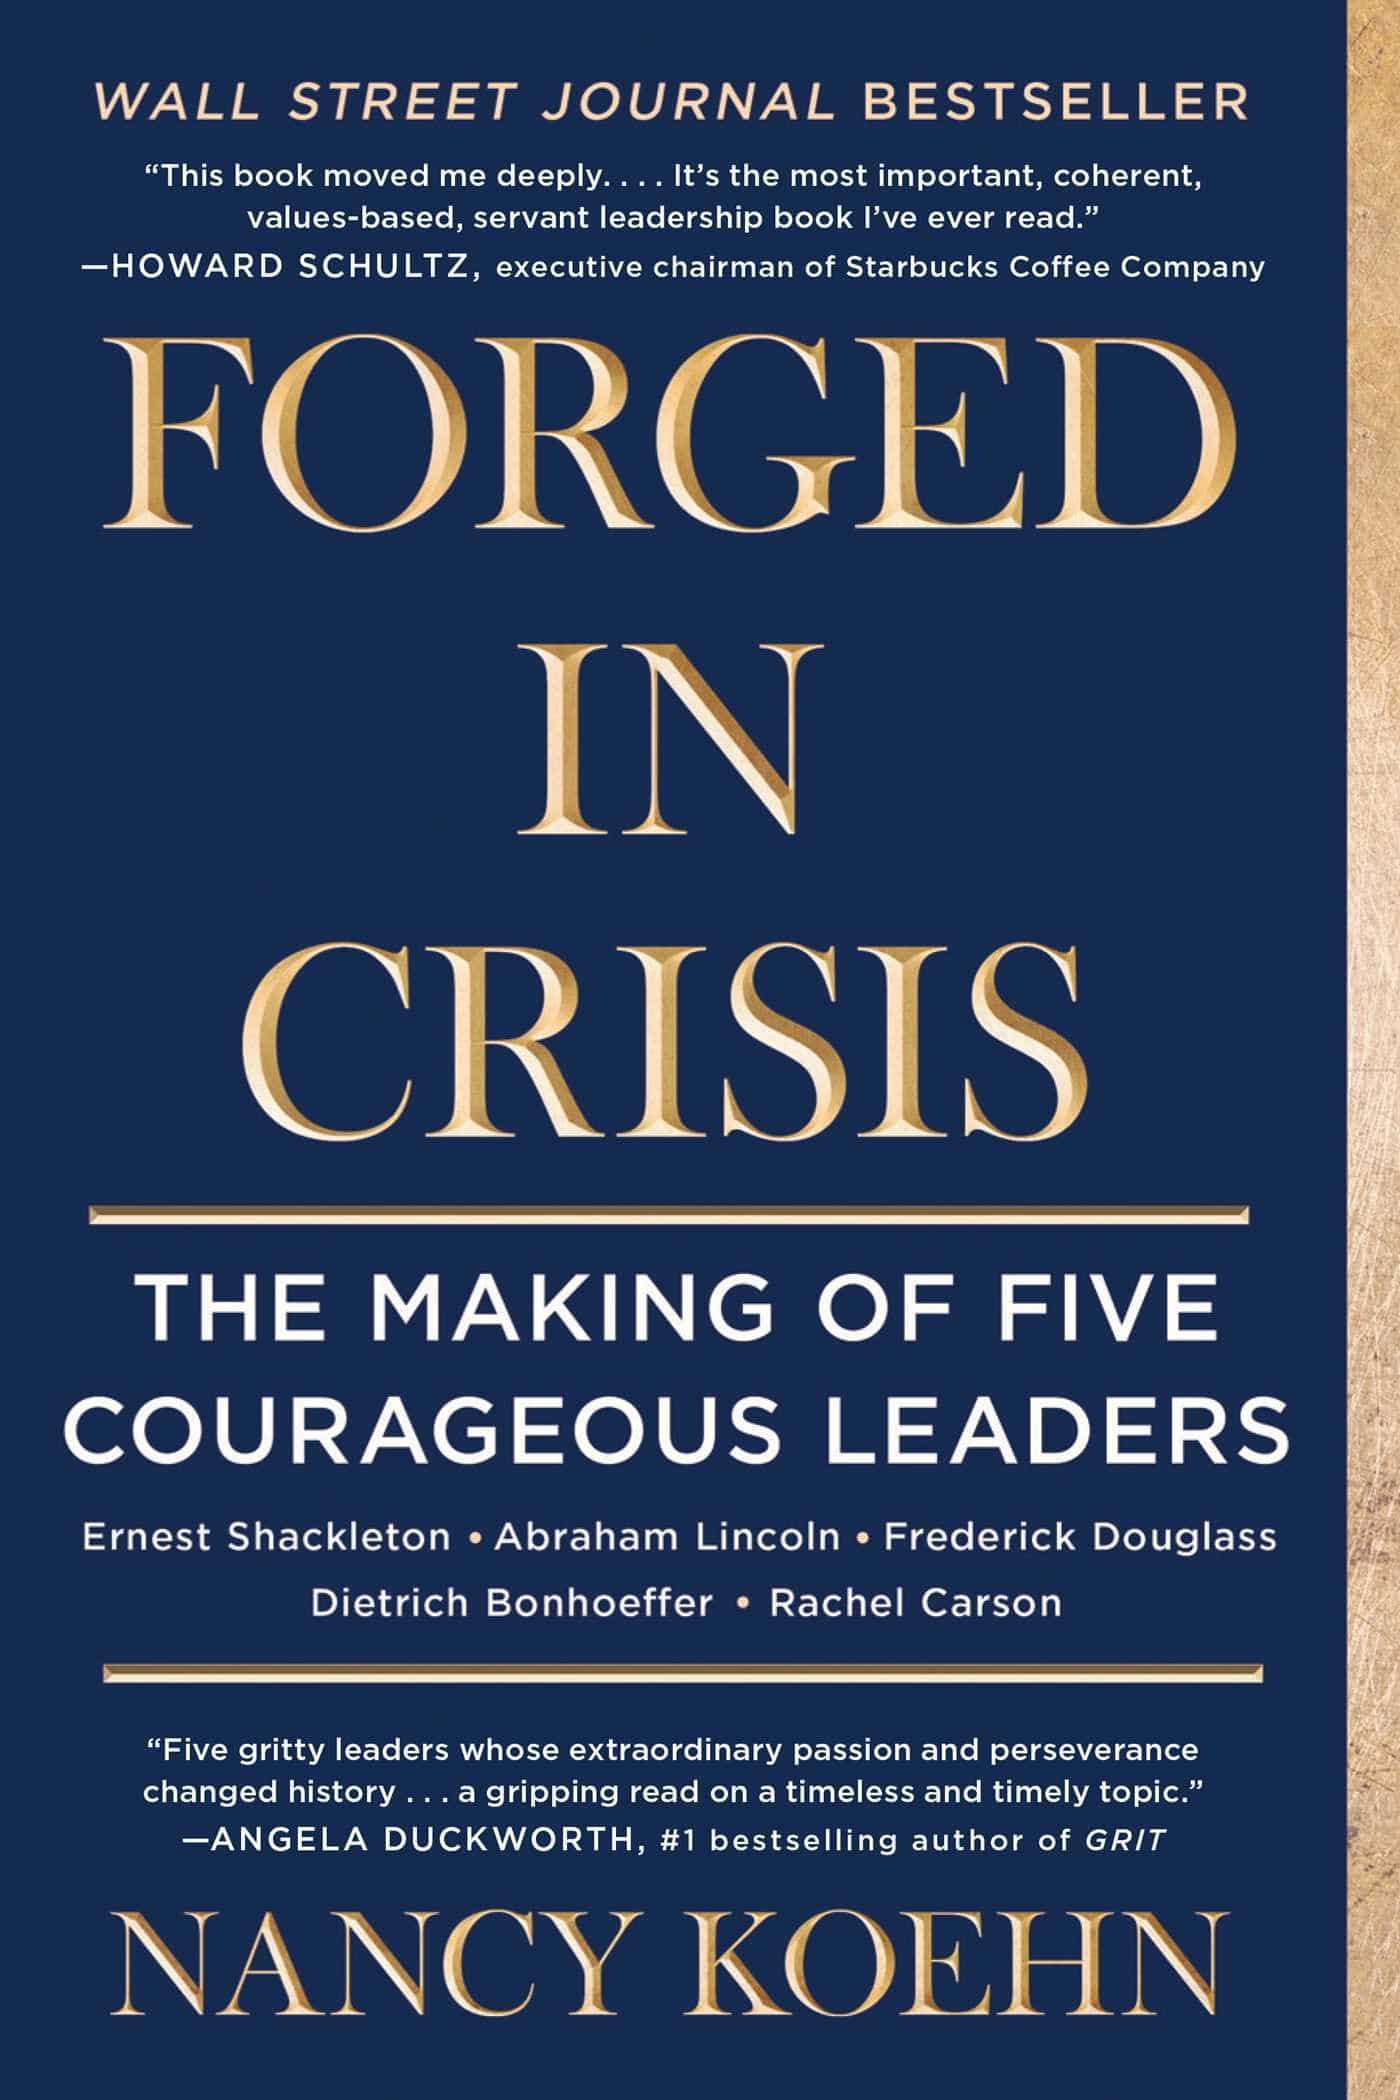 Book Cover- Forged in Crisis: The Making of Five Courageous Leaders by Nancy Koehn (2018)